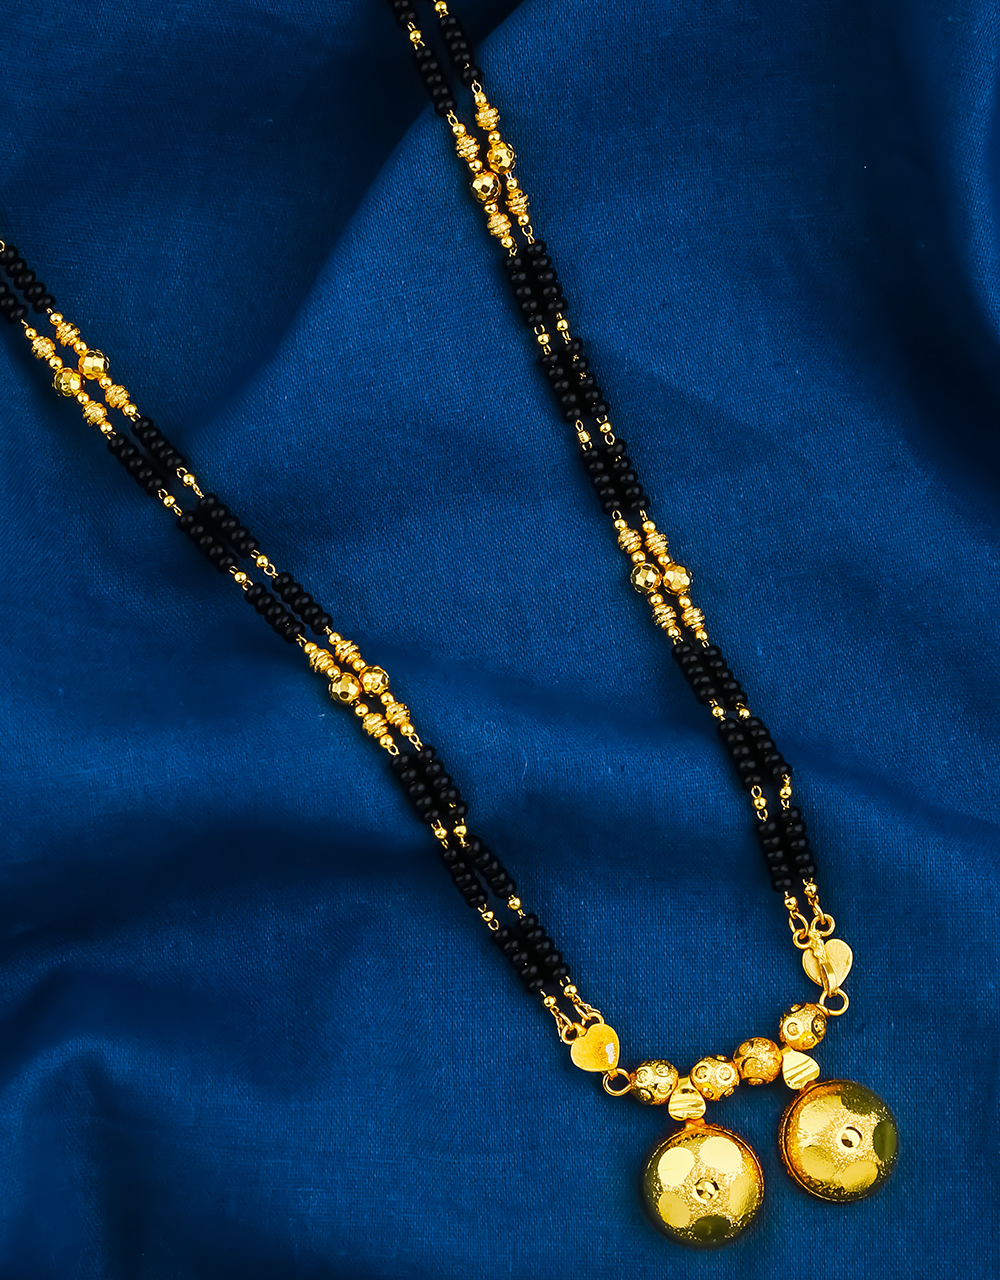 Double Layer Chain Black Beaded Chain Pattern Wati Mangalsutra for Women